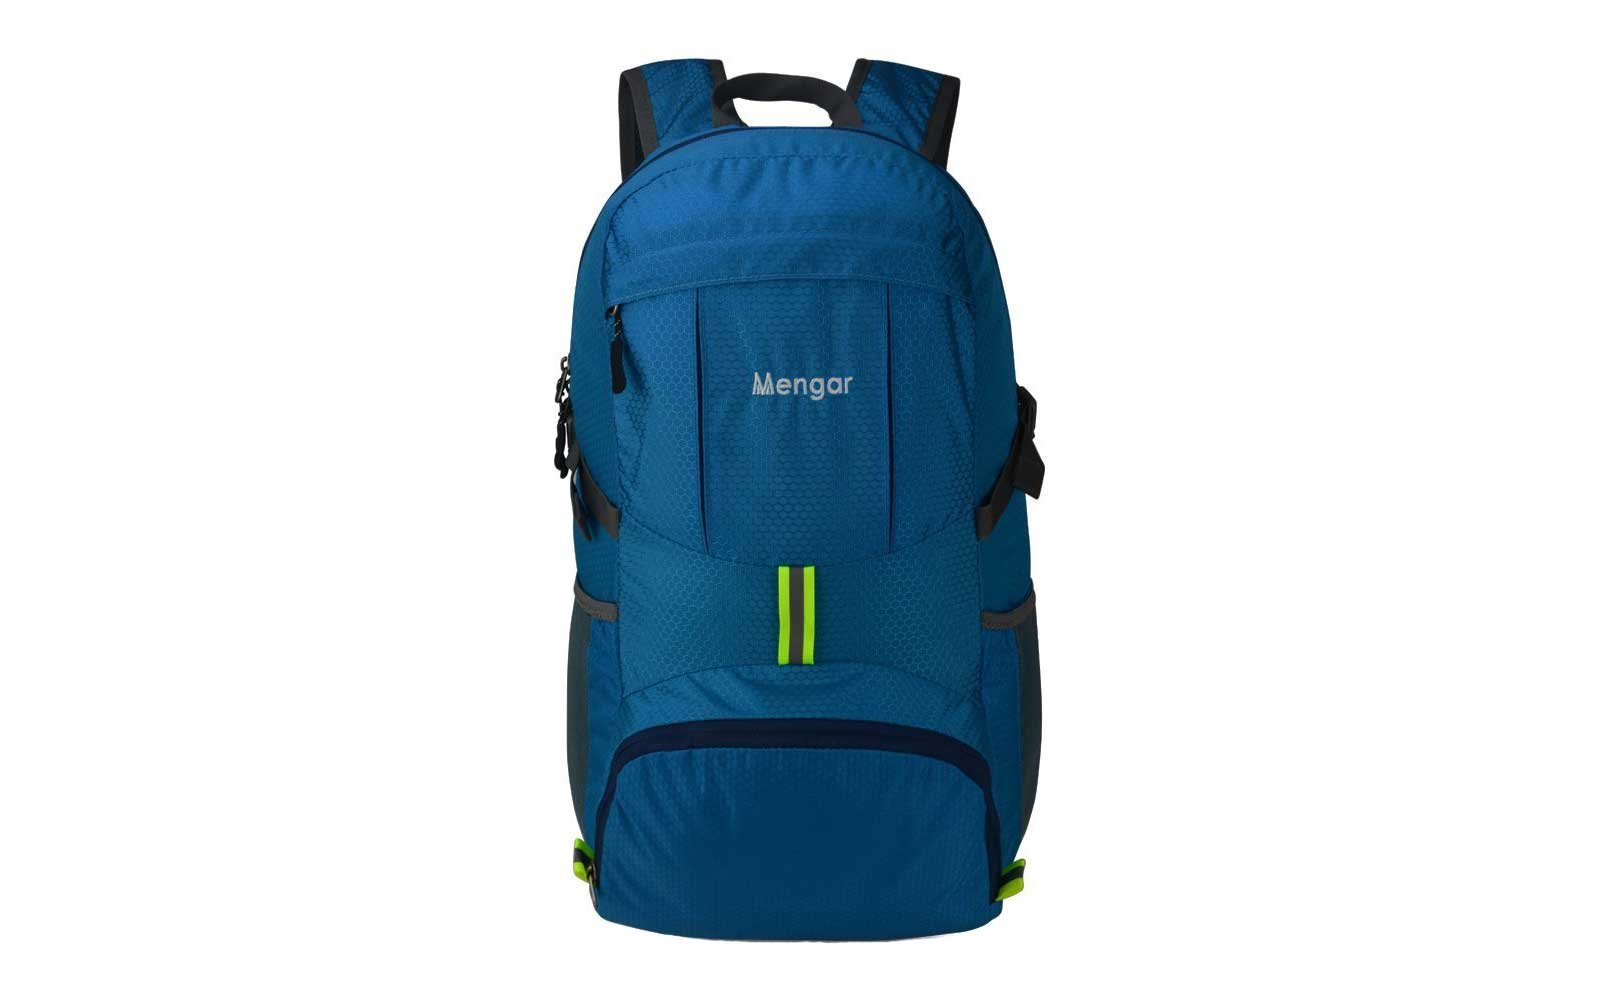 c697c1fcf677 Mengar Water-resistant Packable Backpack 35L